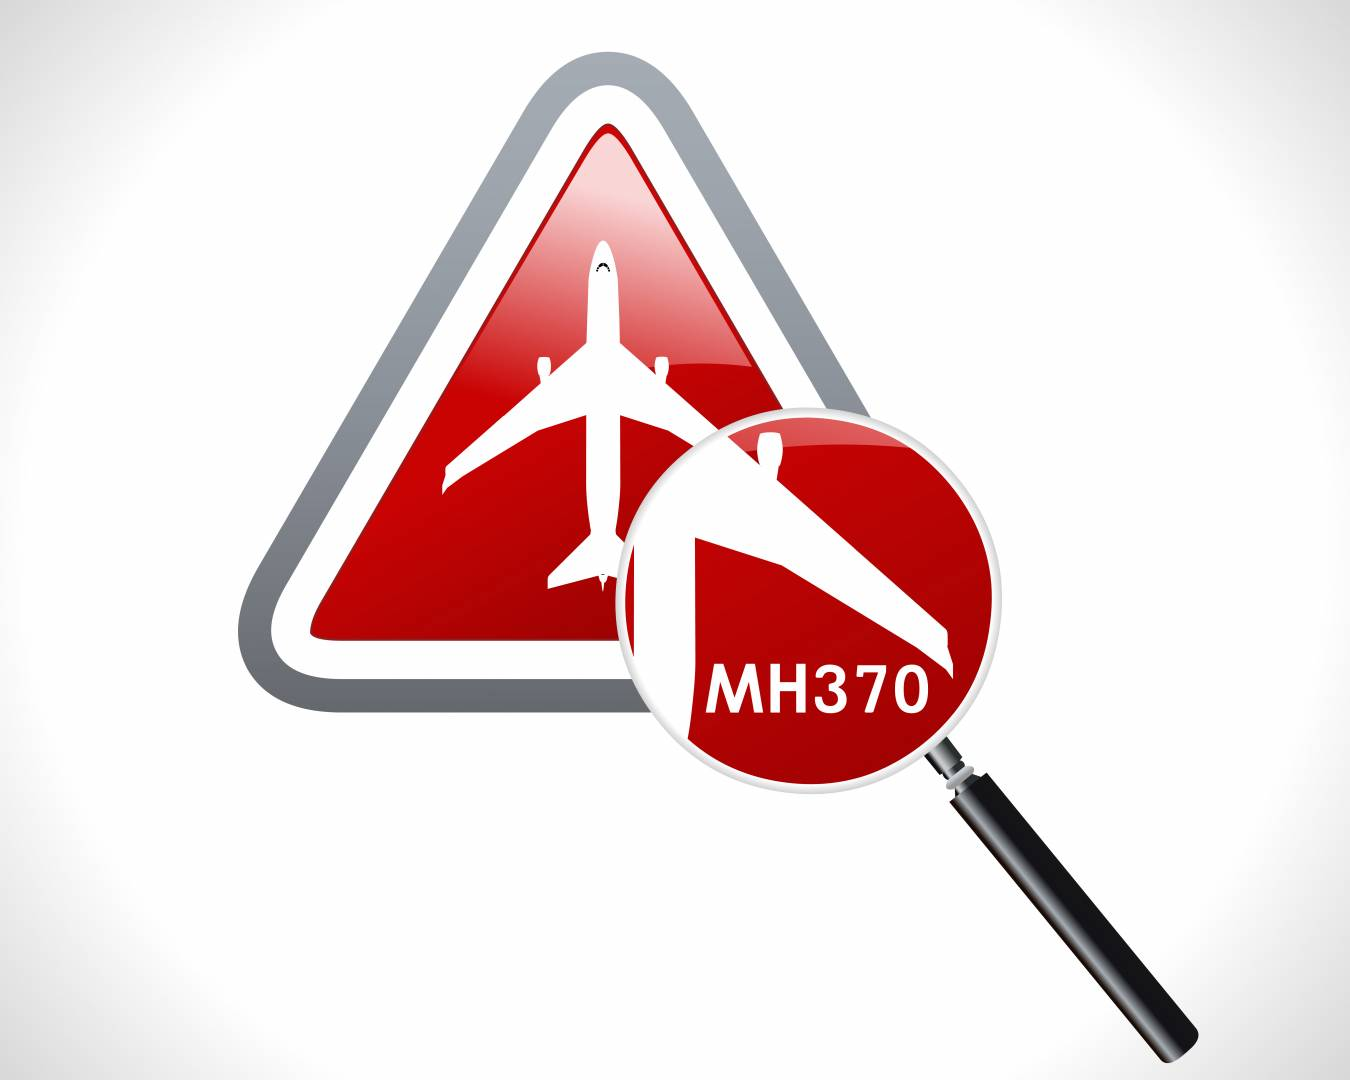 MH370 stock image